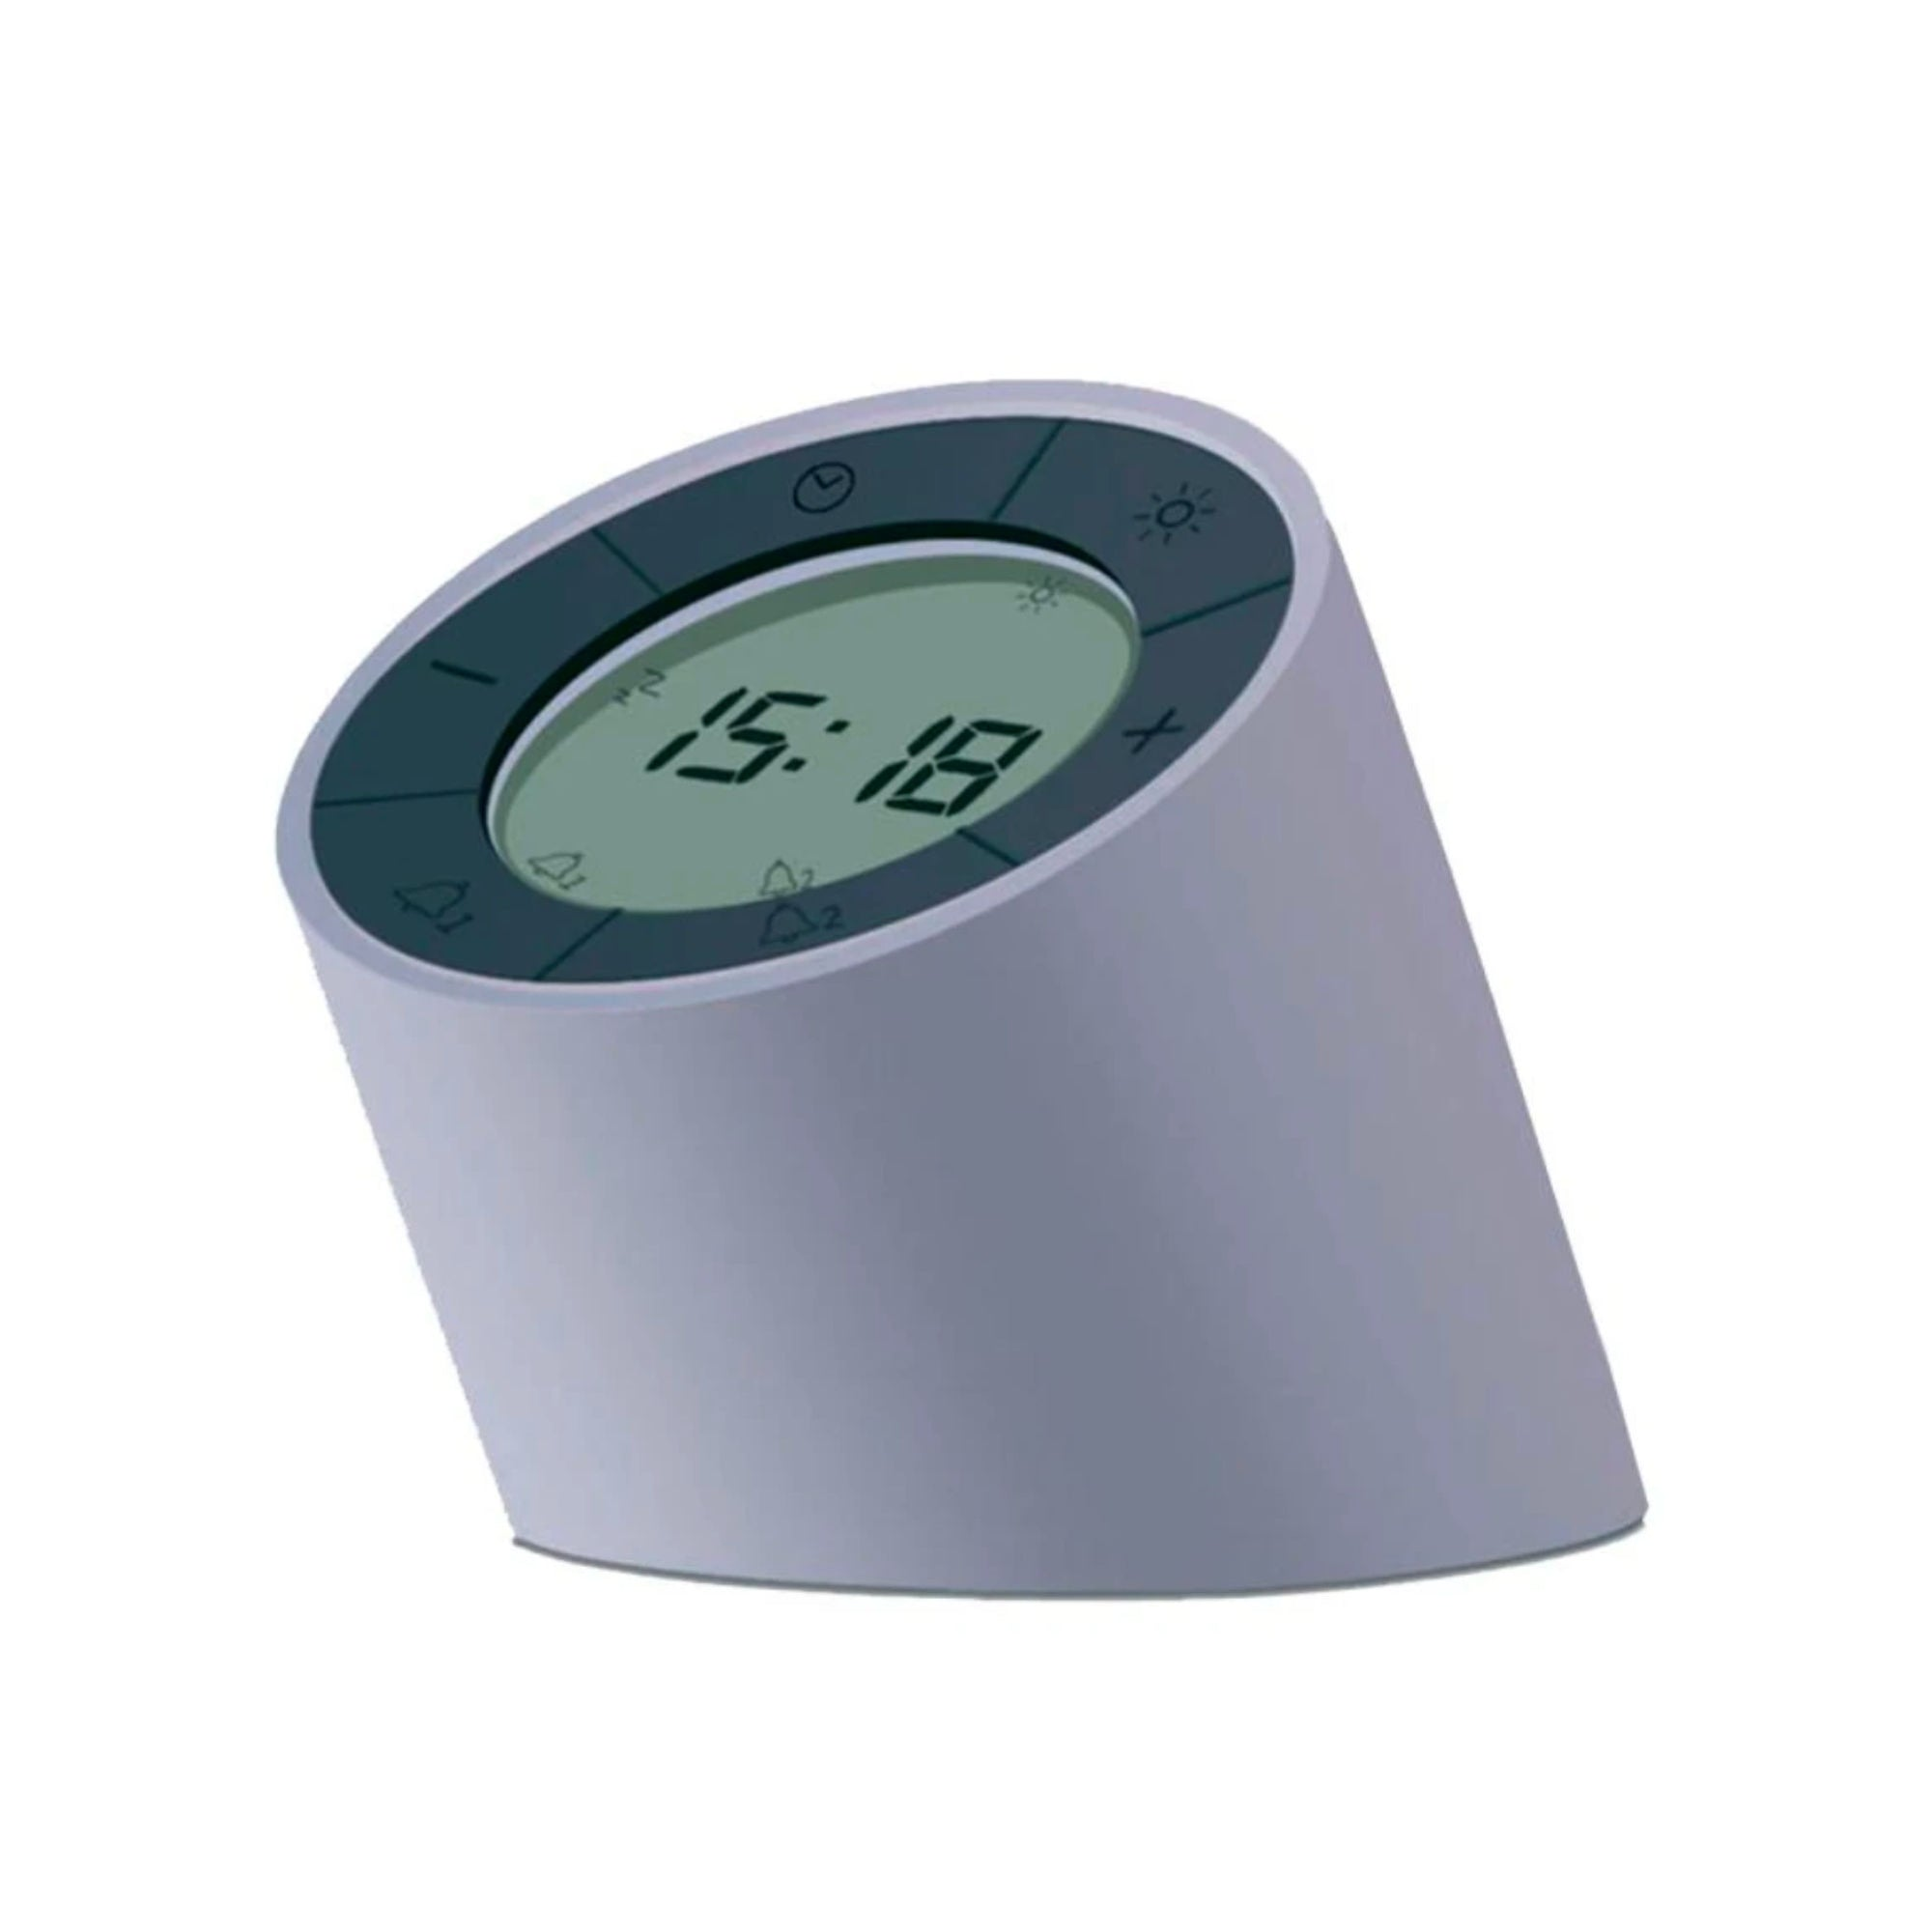 Gingko Edge alarm clock + night light, grey